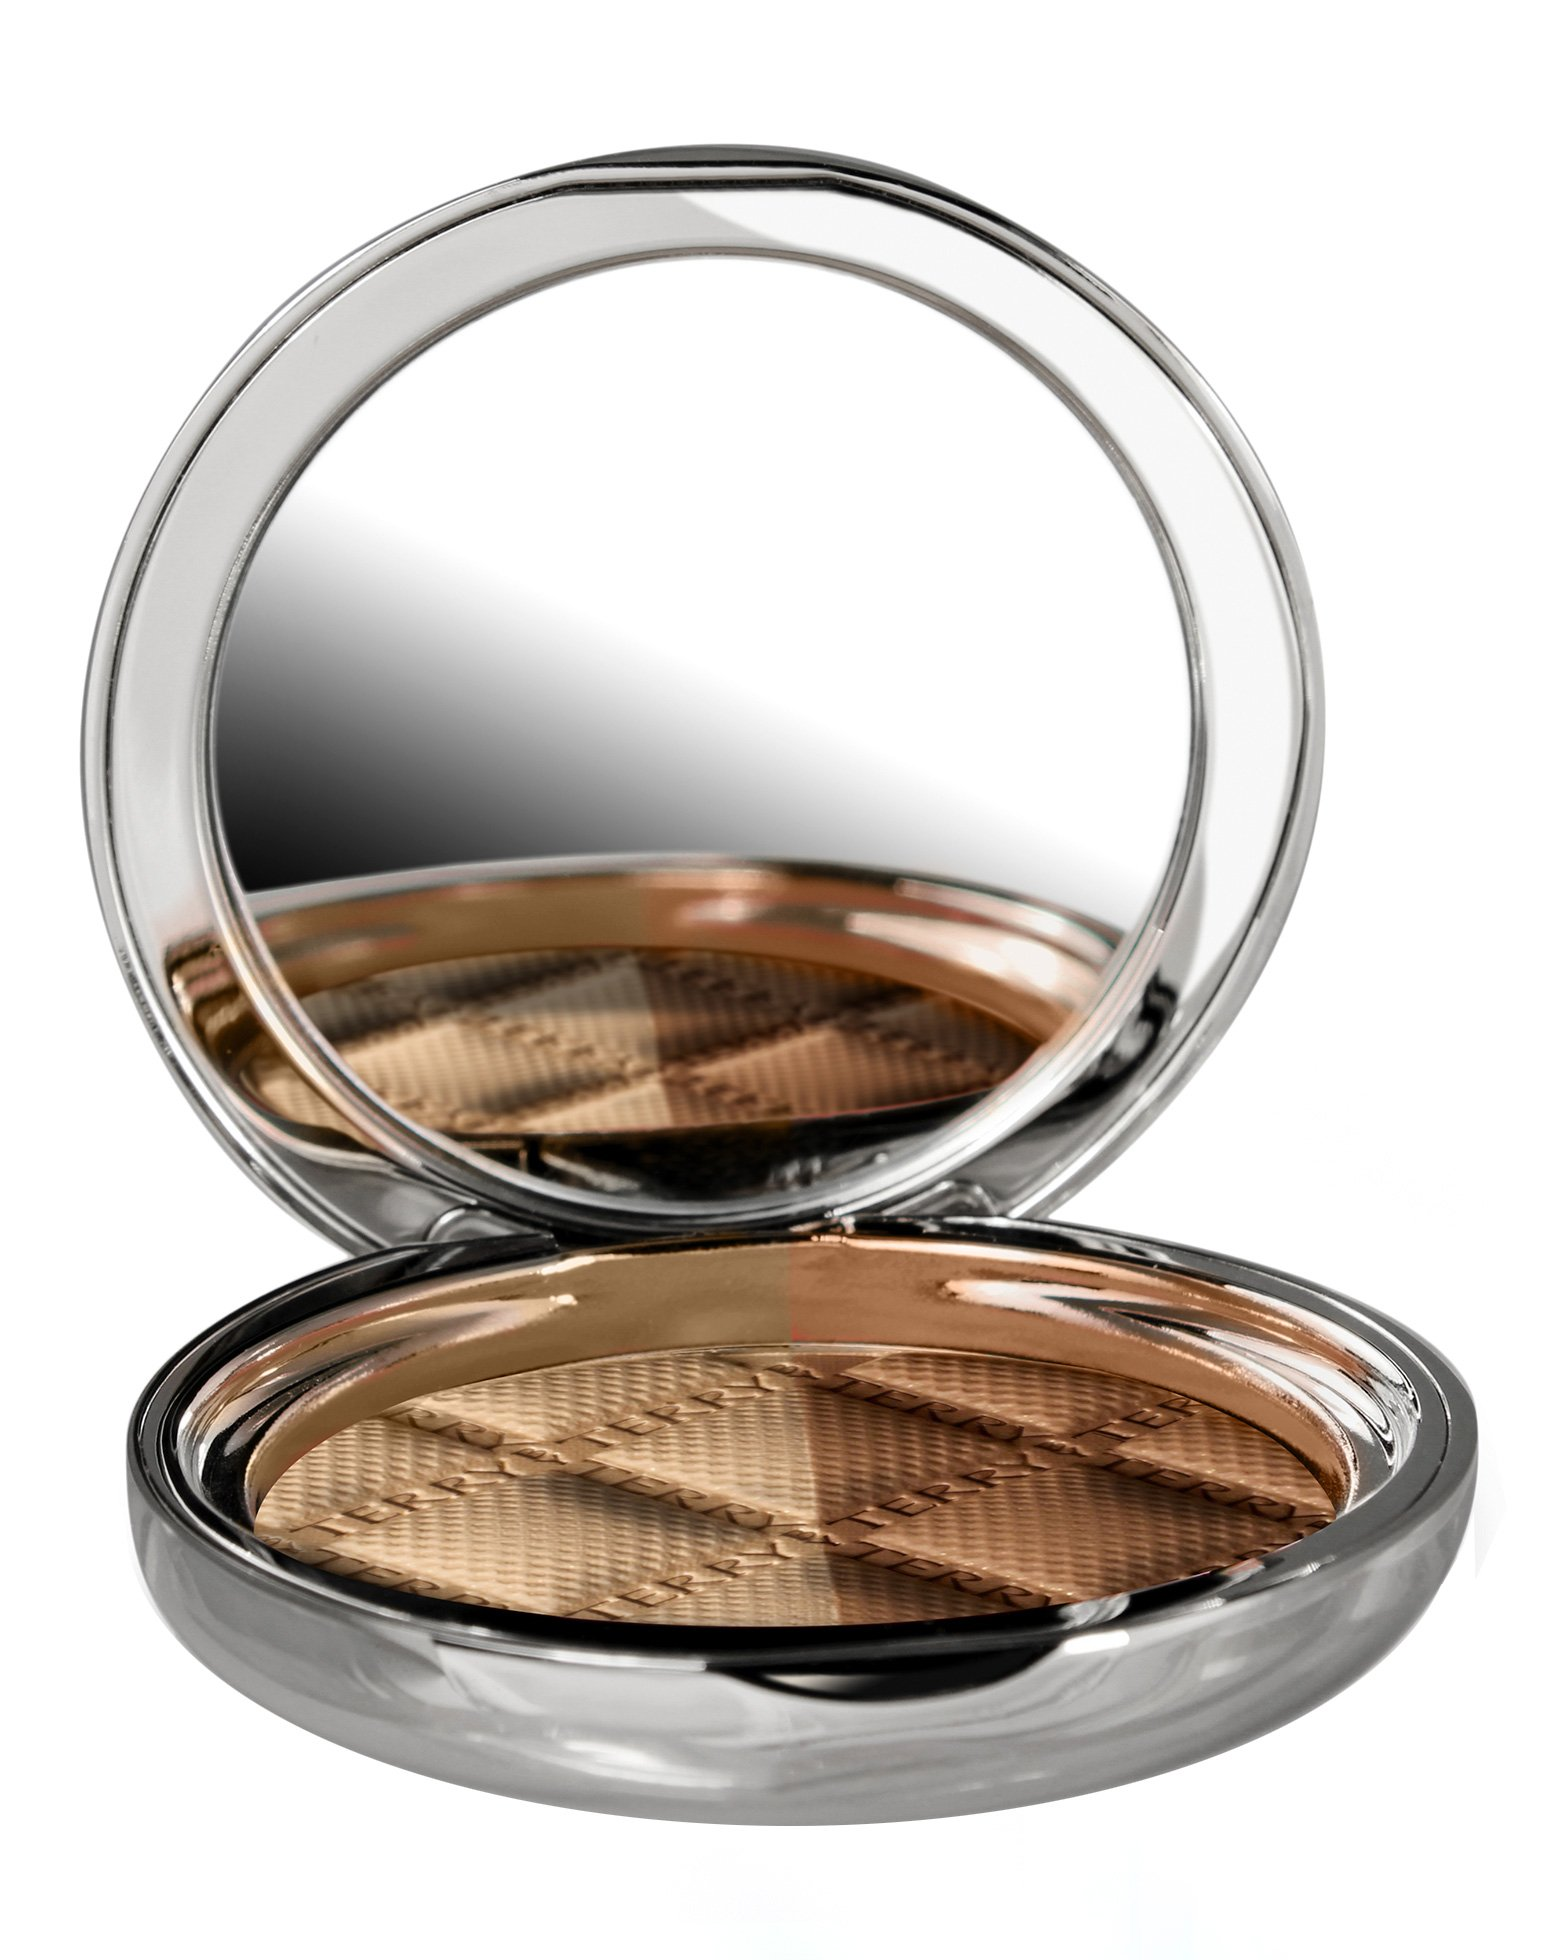 By Terry - Terrybly Densiliss Contouring - 200 - Beige Contrast